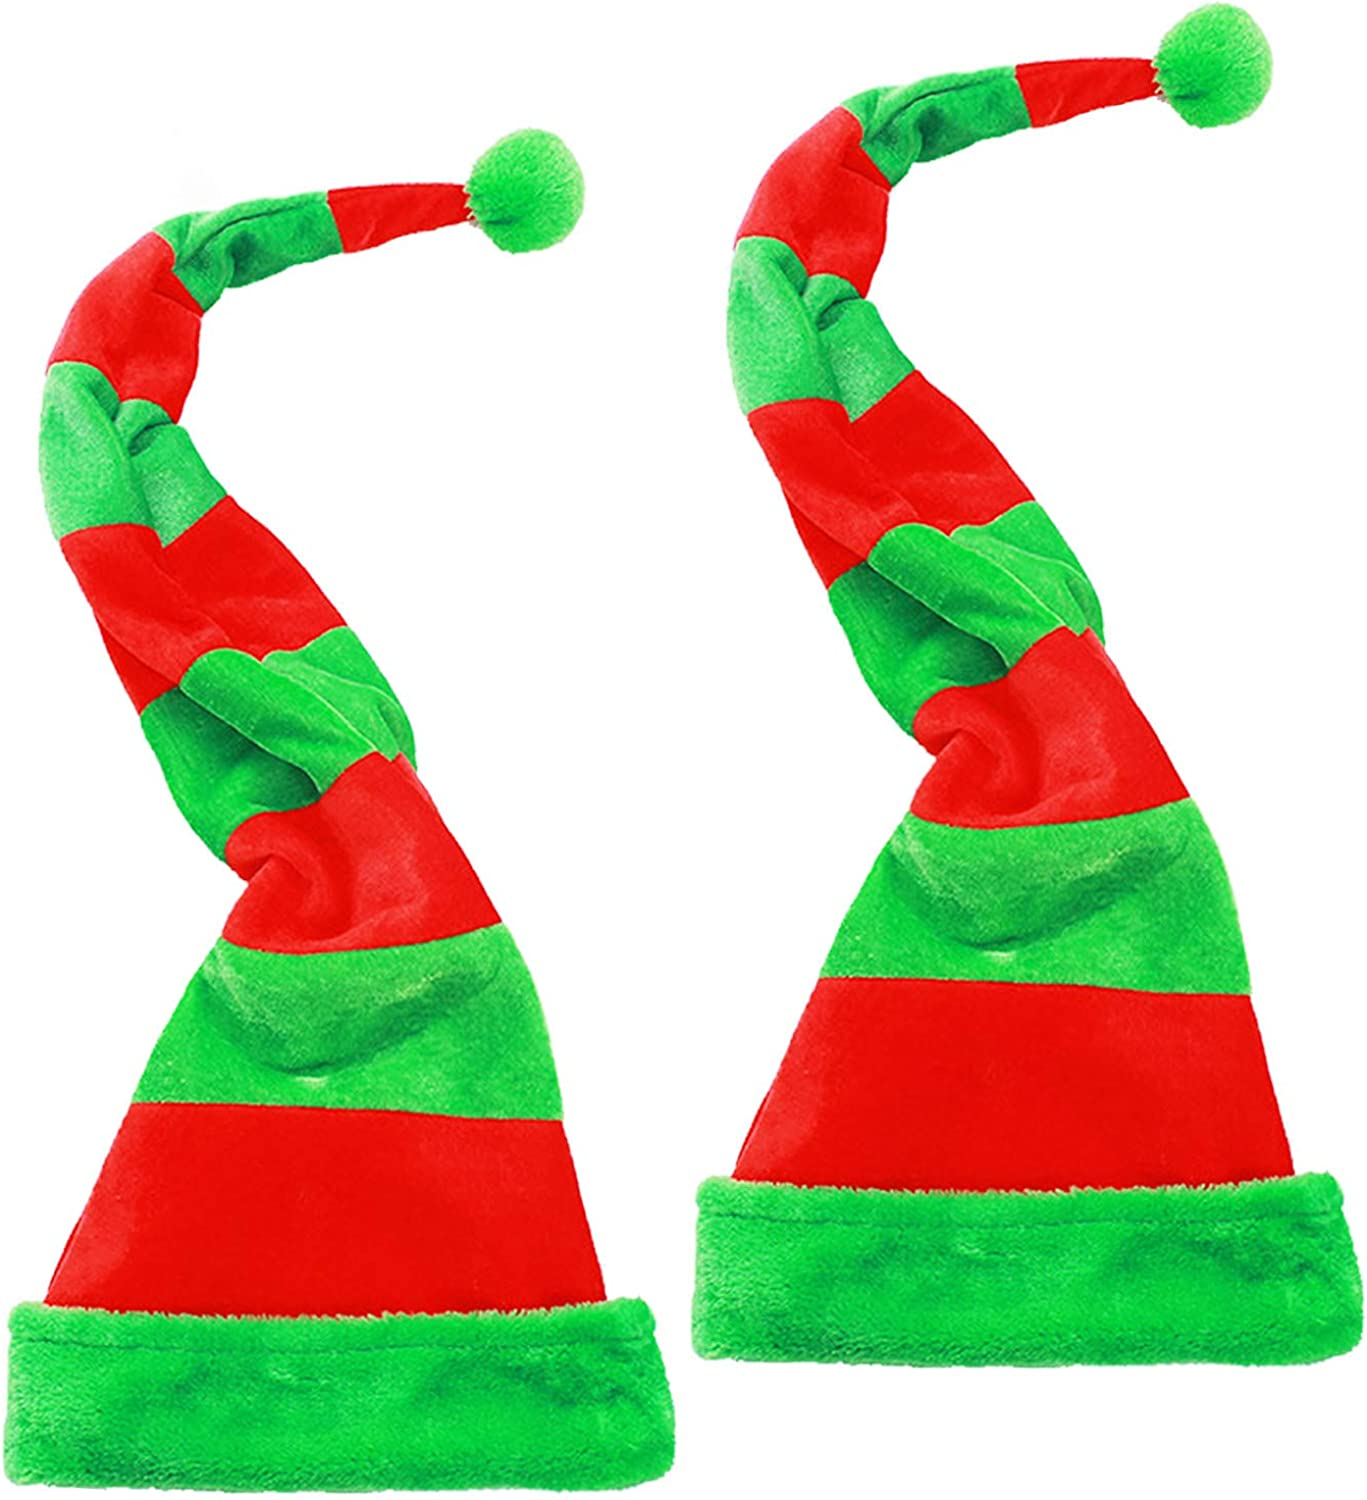 Iceyyyy 2Pcs Christmas Elf Hat - for Striped Award Ranking integrated 1st place Kids Long Felt